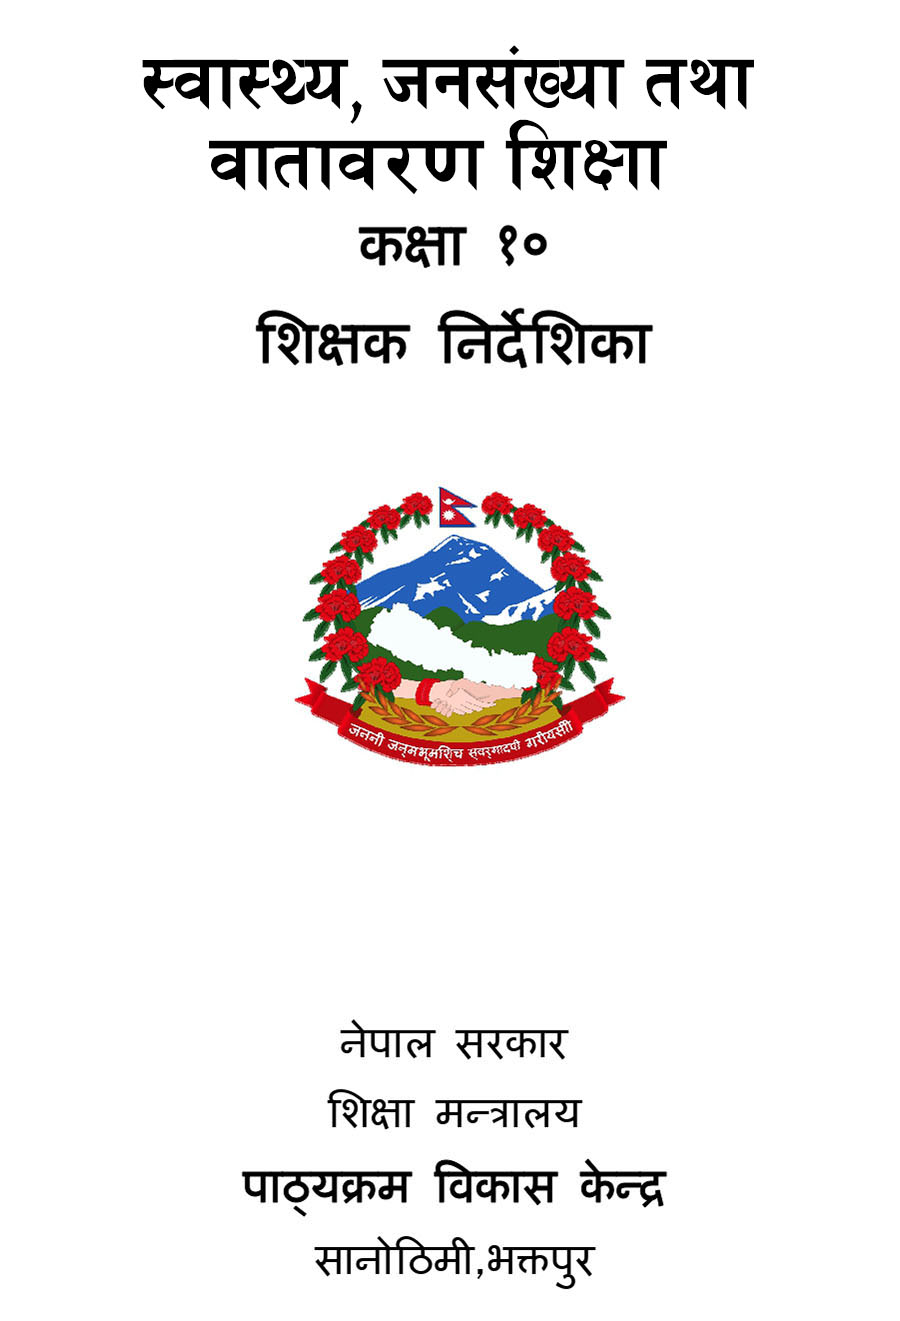 Teachers-Guide-Book-of-Health-Population-and-Environment-Education-HPE-Grade-10-SEE-Download-in-PDF